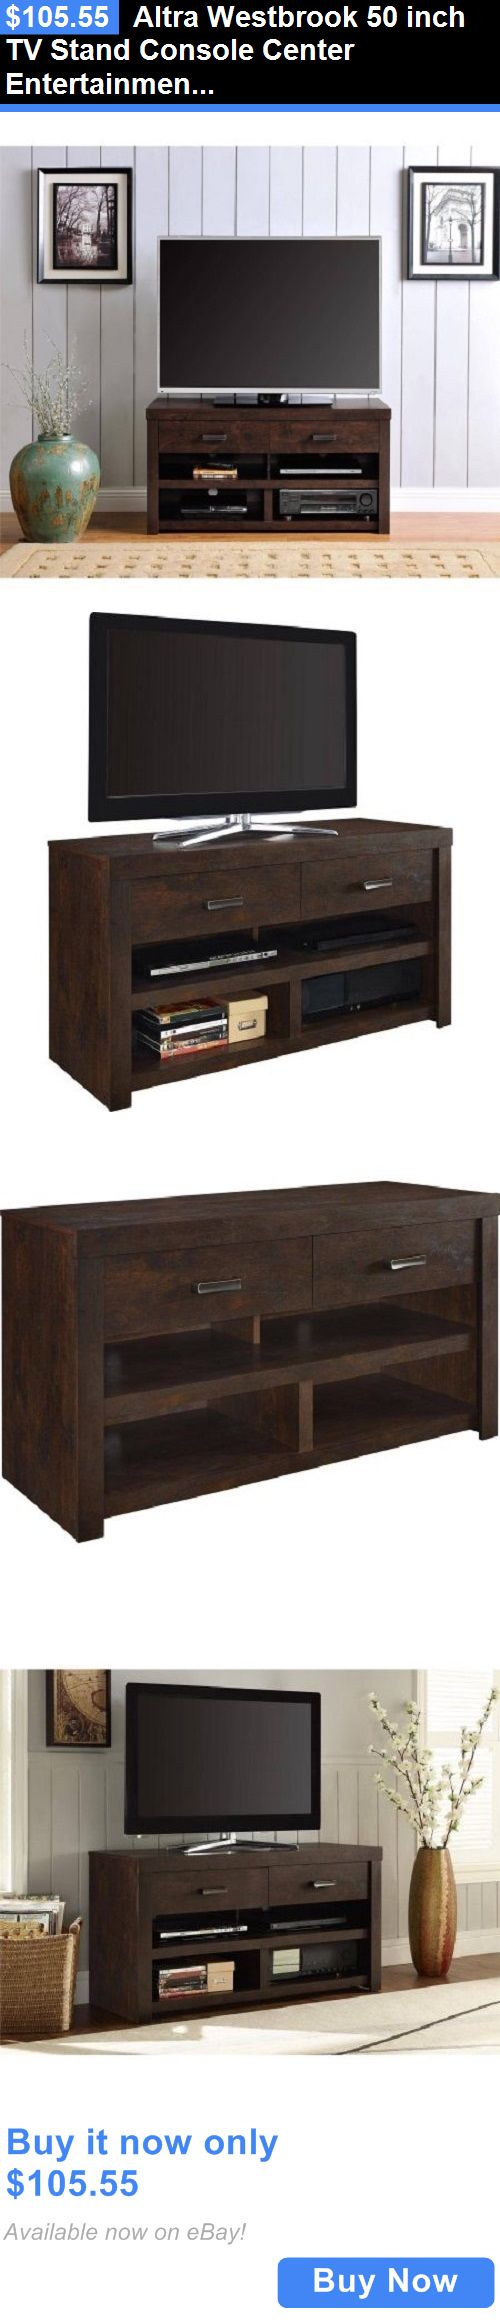 Entertainment Units TV Stands: Altra Westbrook 50 Inch Tv Stand Console Center Entertainment Furniture Home BUY IT NOW ONLY: $105.55